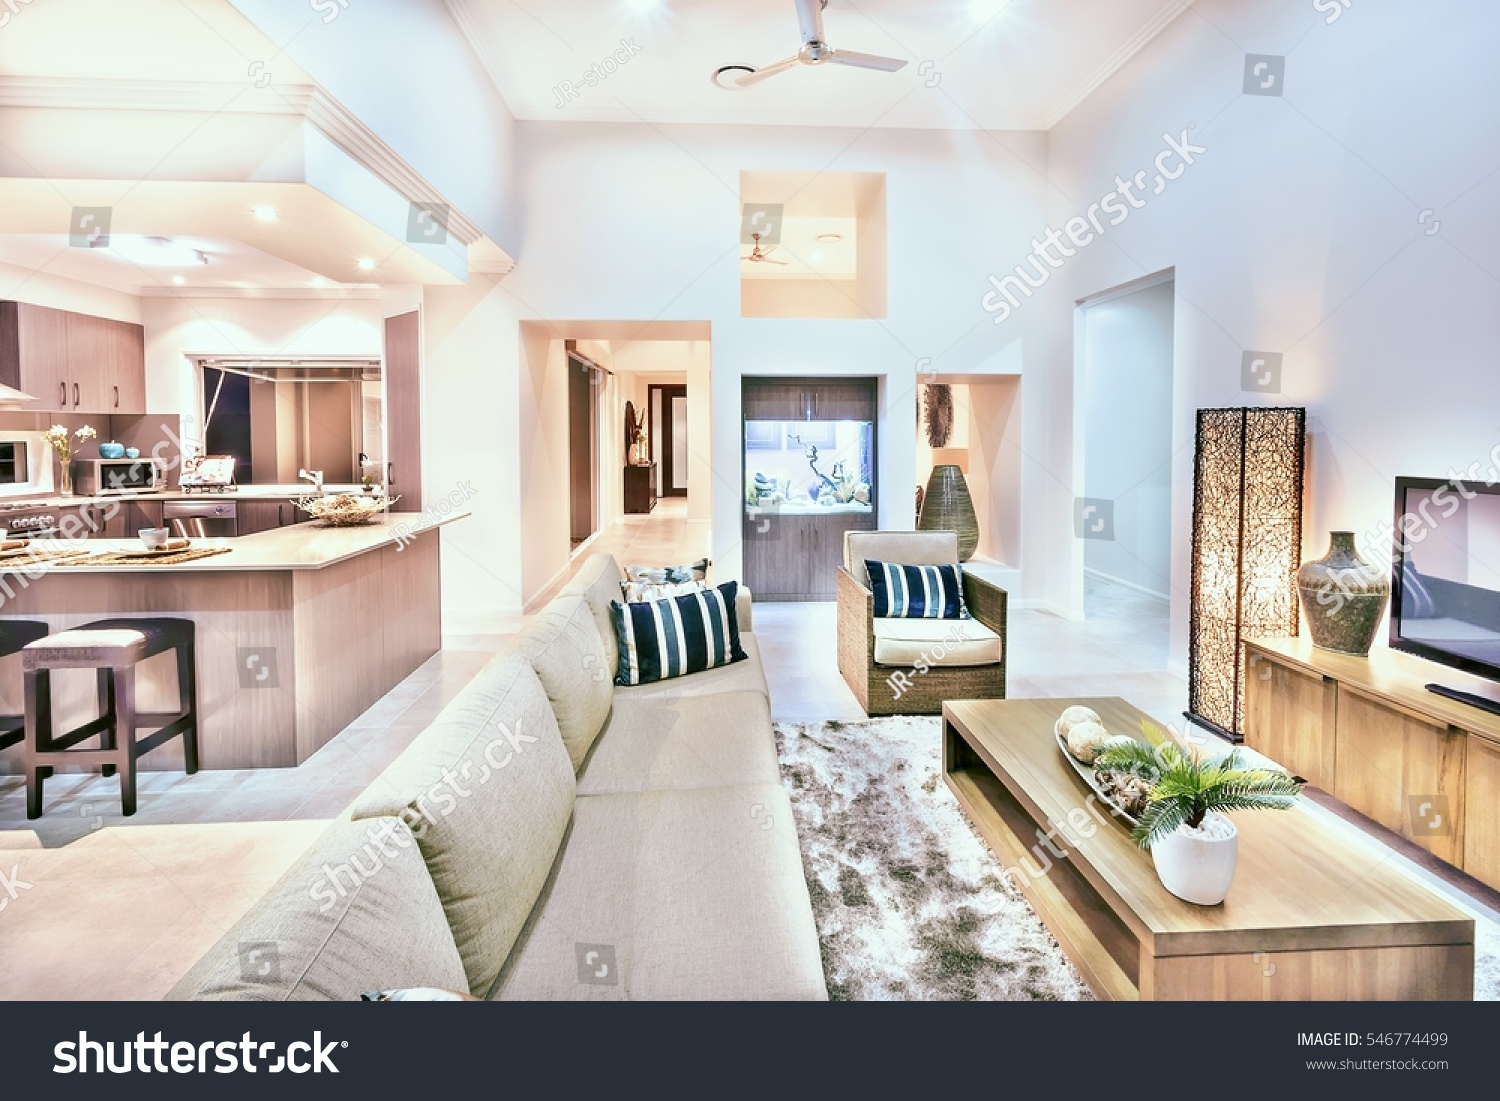 House Interior Comfortable Furnitures Kitchen Wears Stock